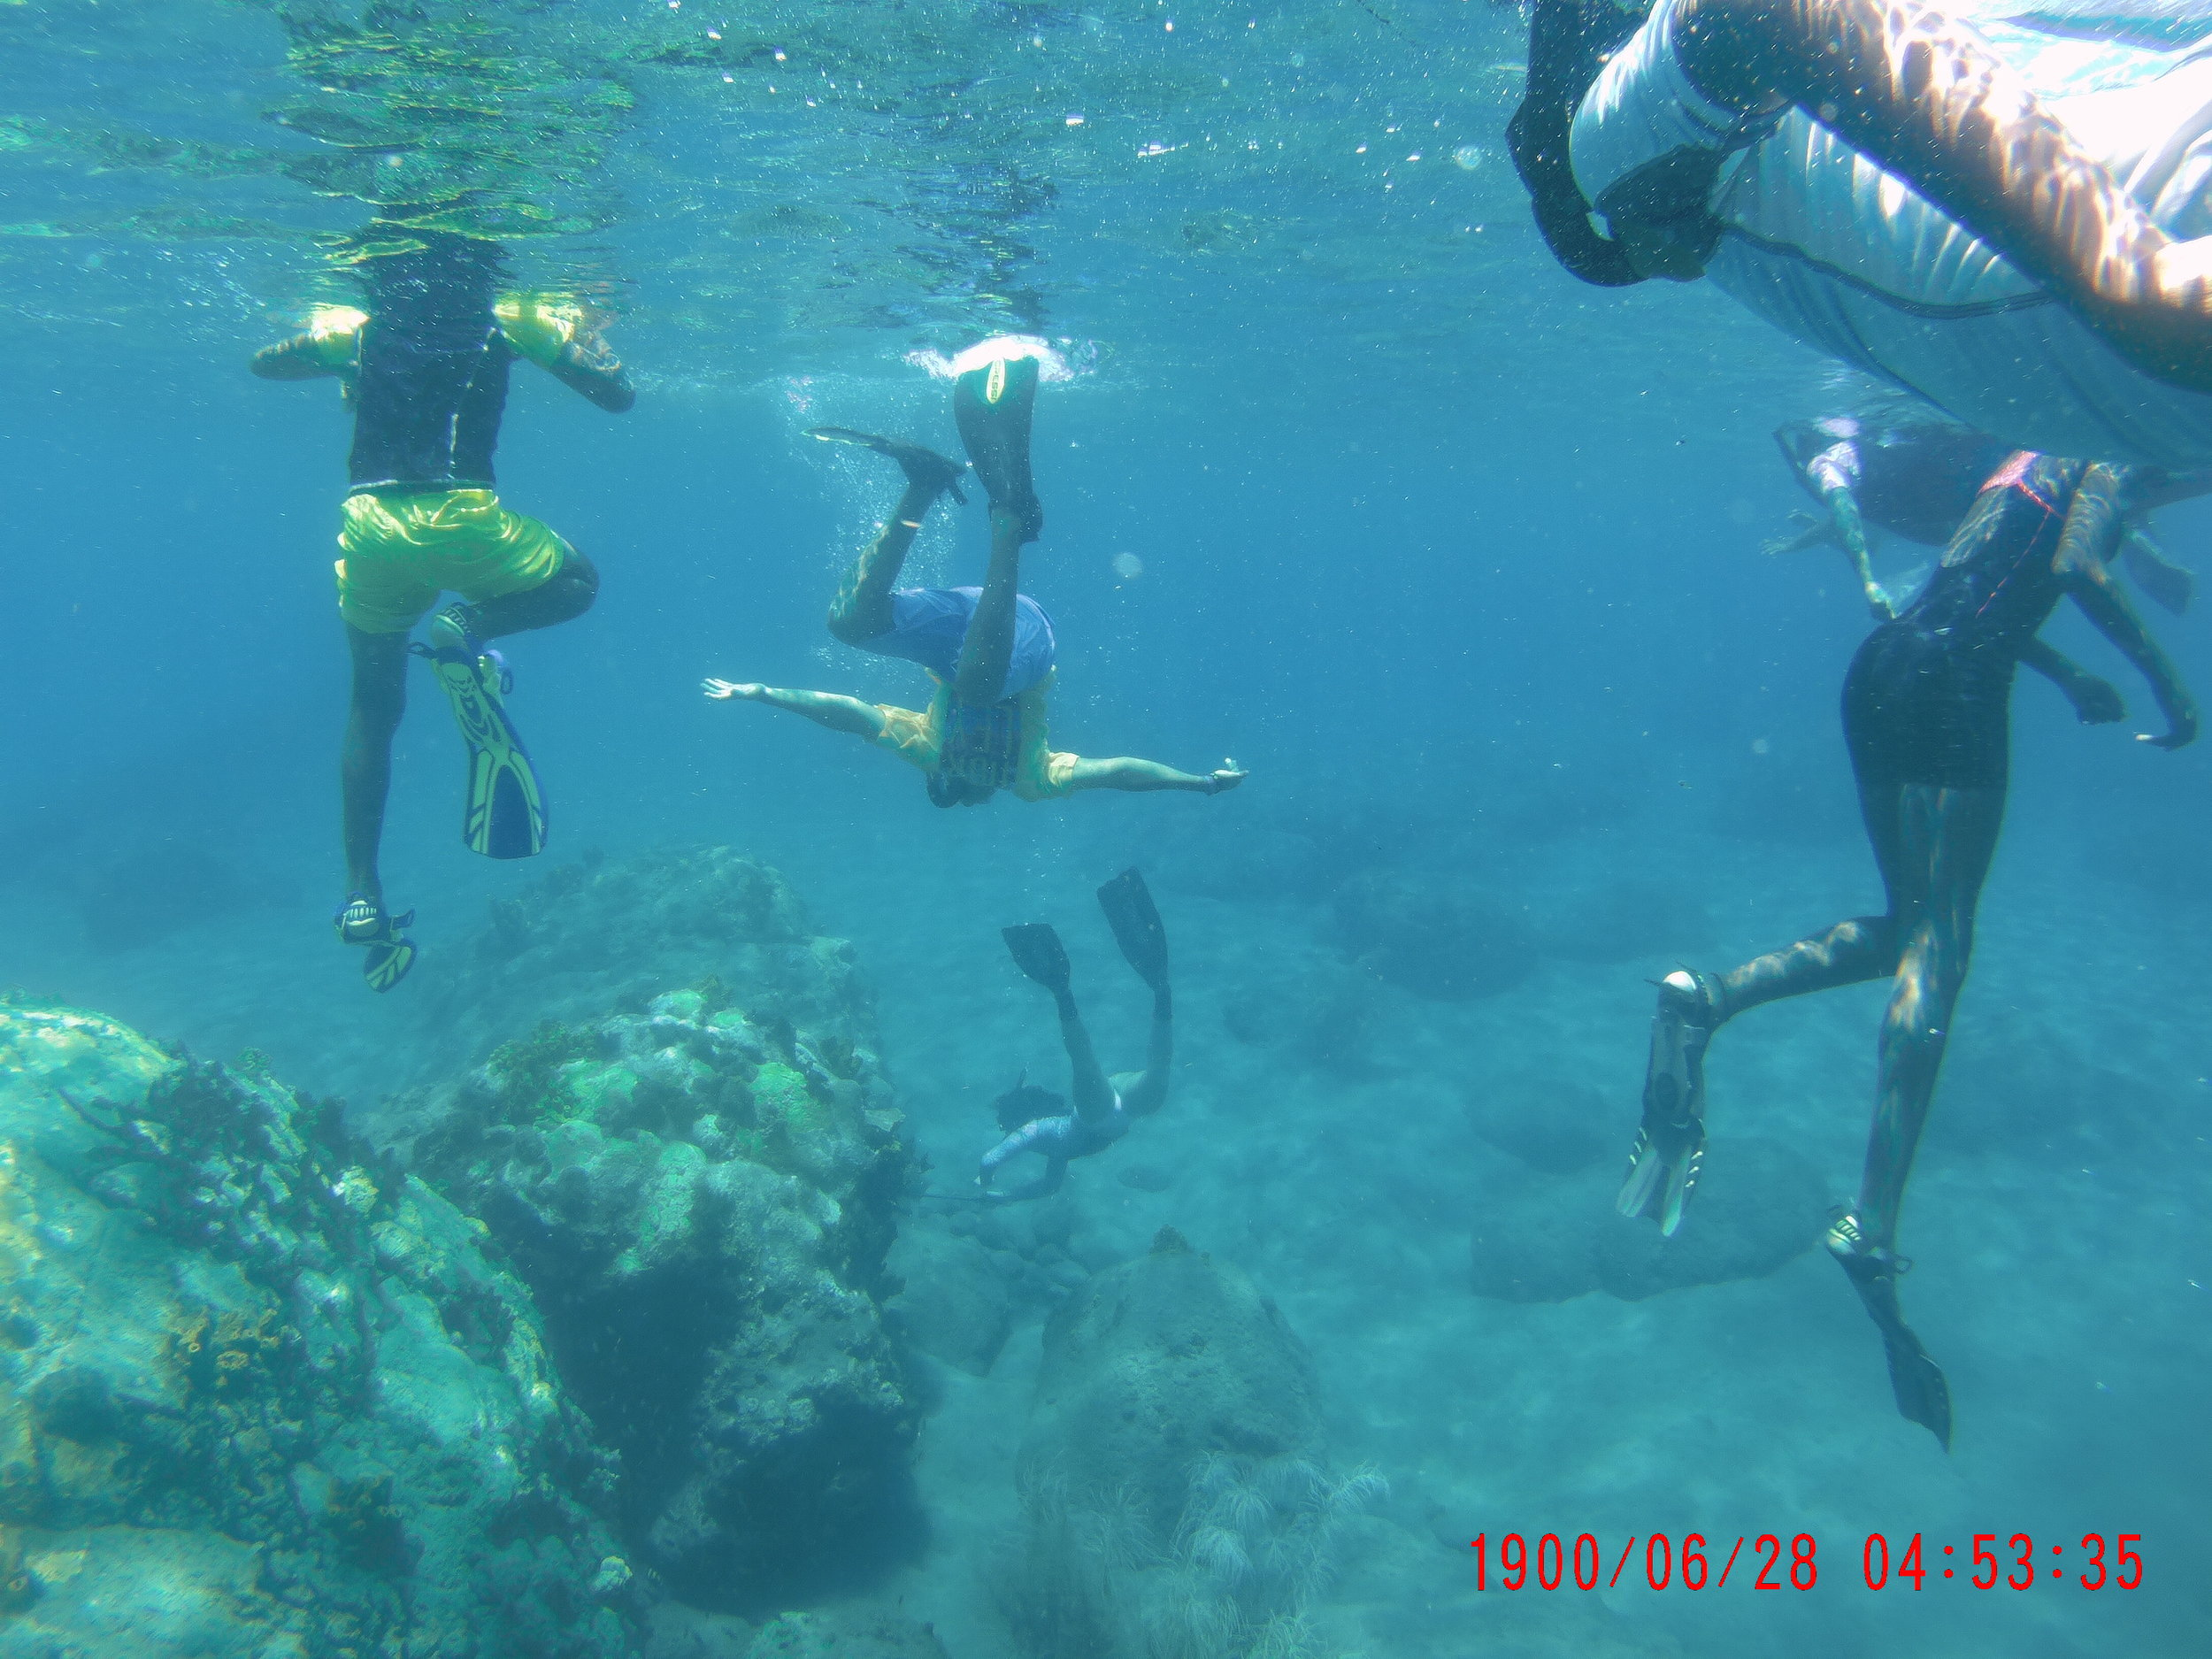 Snorkelling over the Little Bay reefs